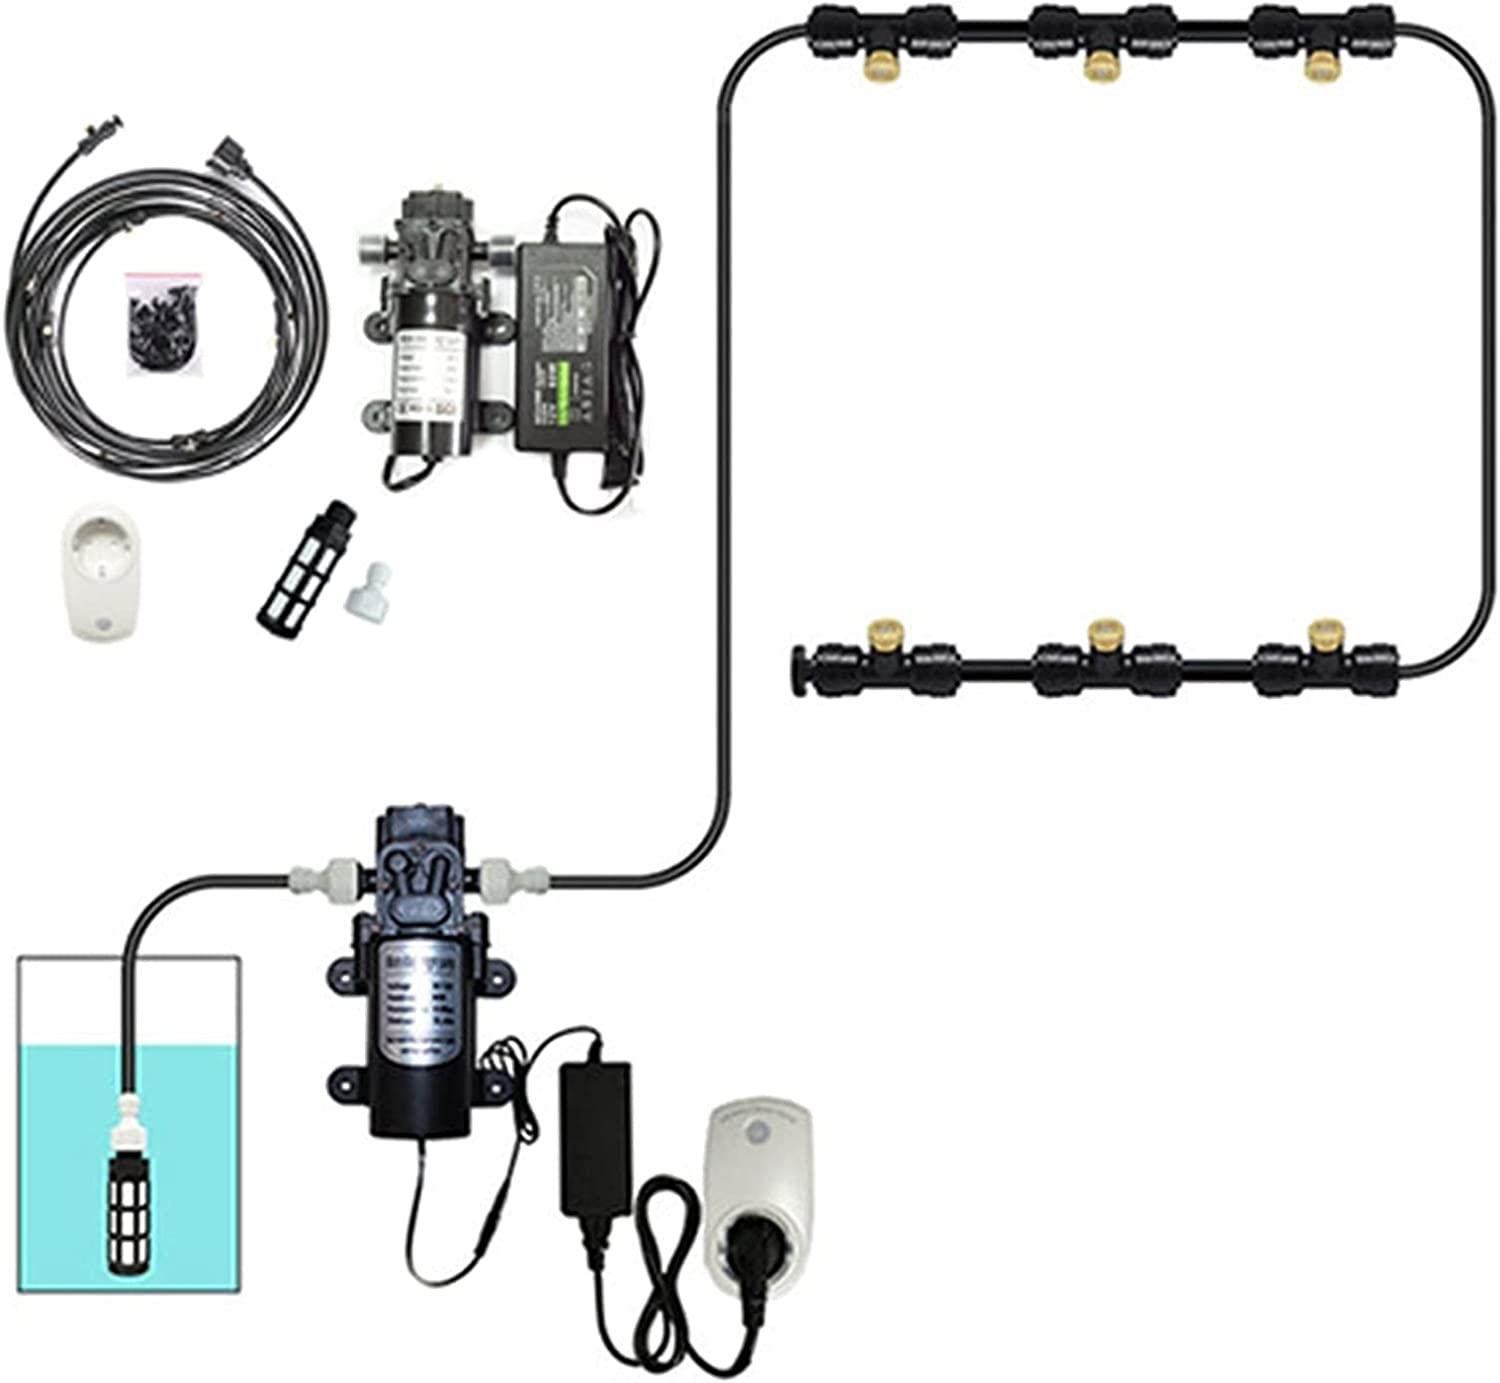 Outdoor Misting Sale item Cooling System Kit with Filter Mis 35% OFF Pump and 12v